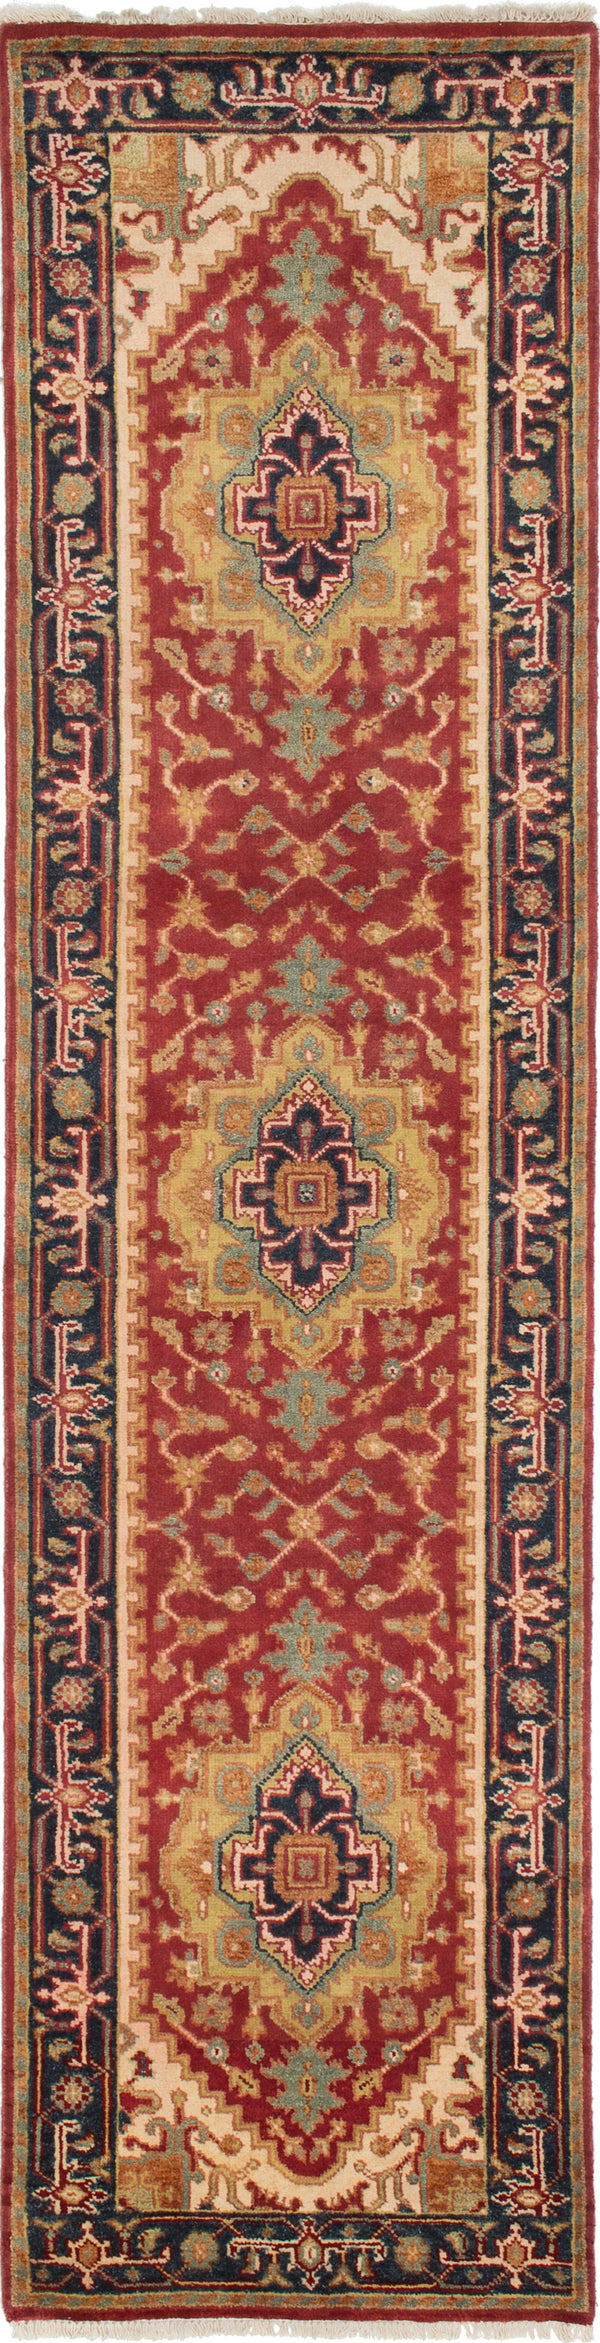 "Hand-knotted Indian Floral  Traditional Serapi-Heritage Runner rug  Dark Copper 2'6 x 10'3"" """